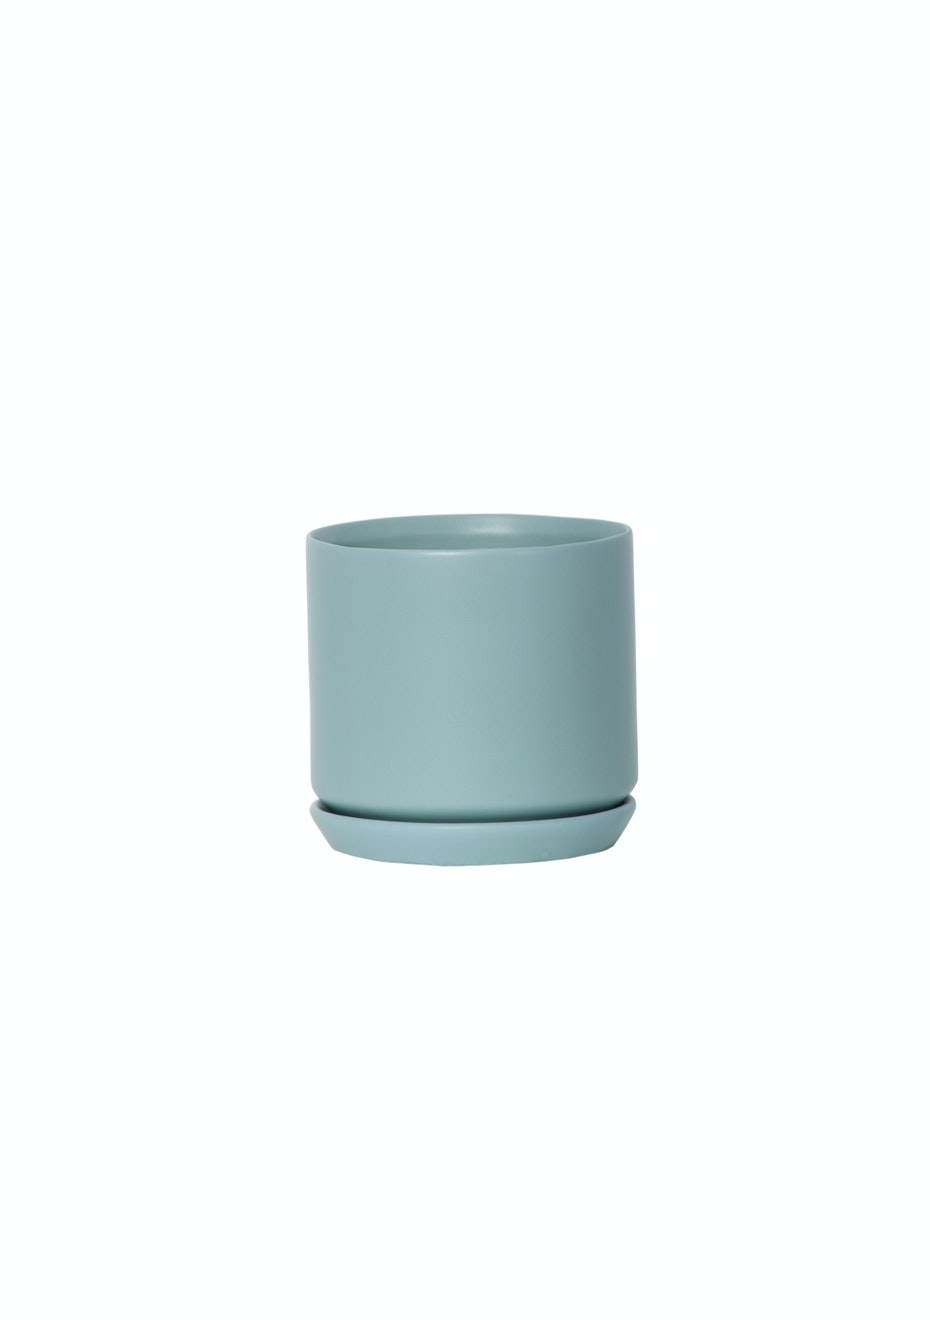 General Eclectic - Small Oslo Planter Blue Mist